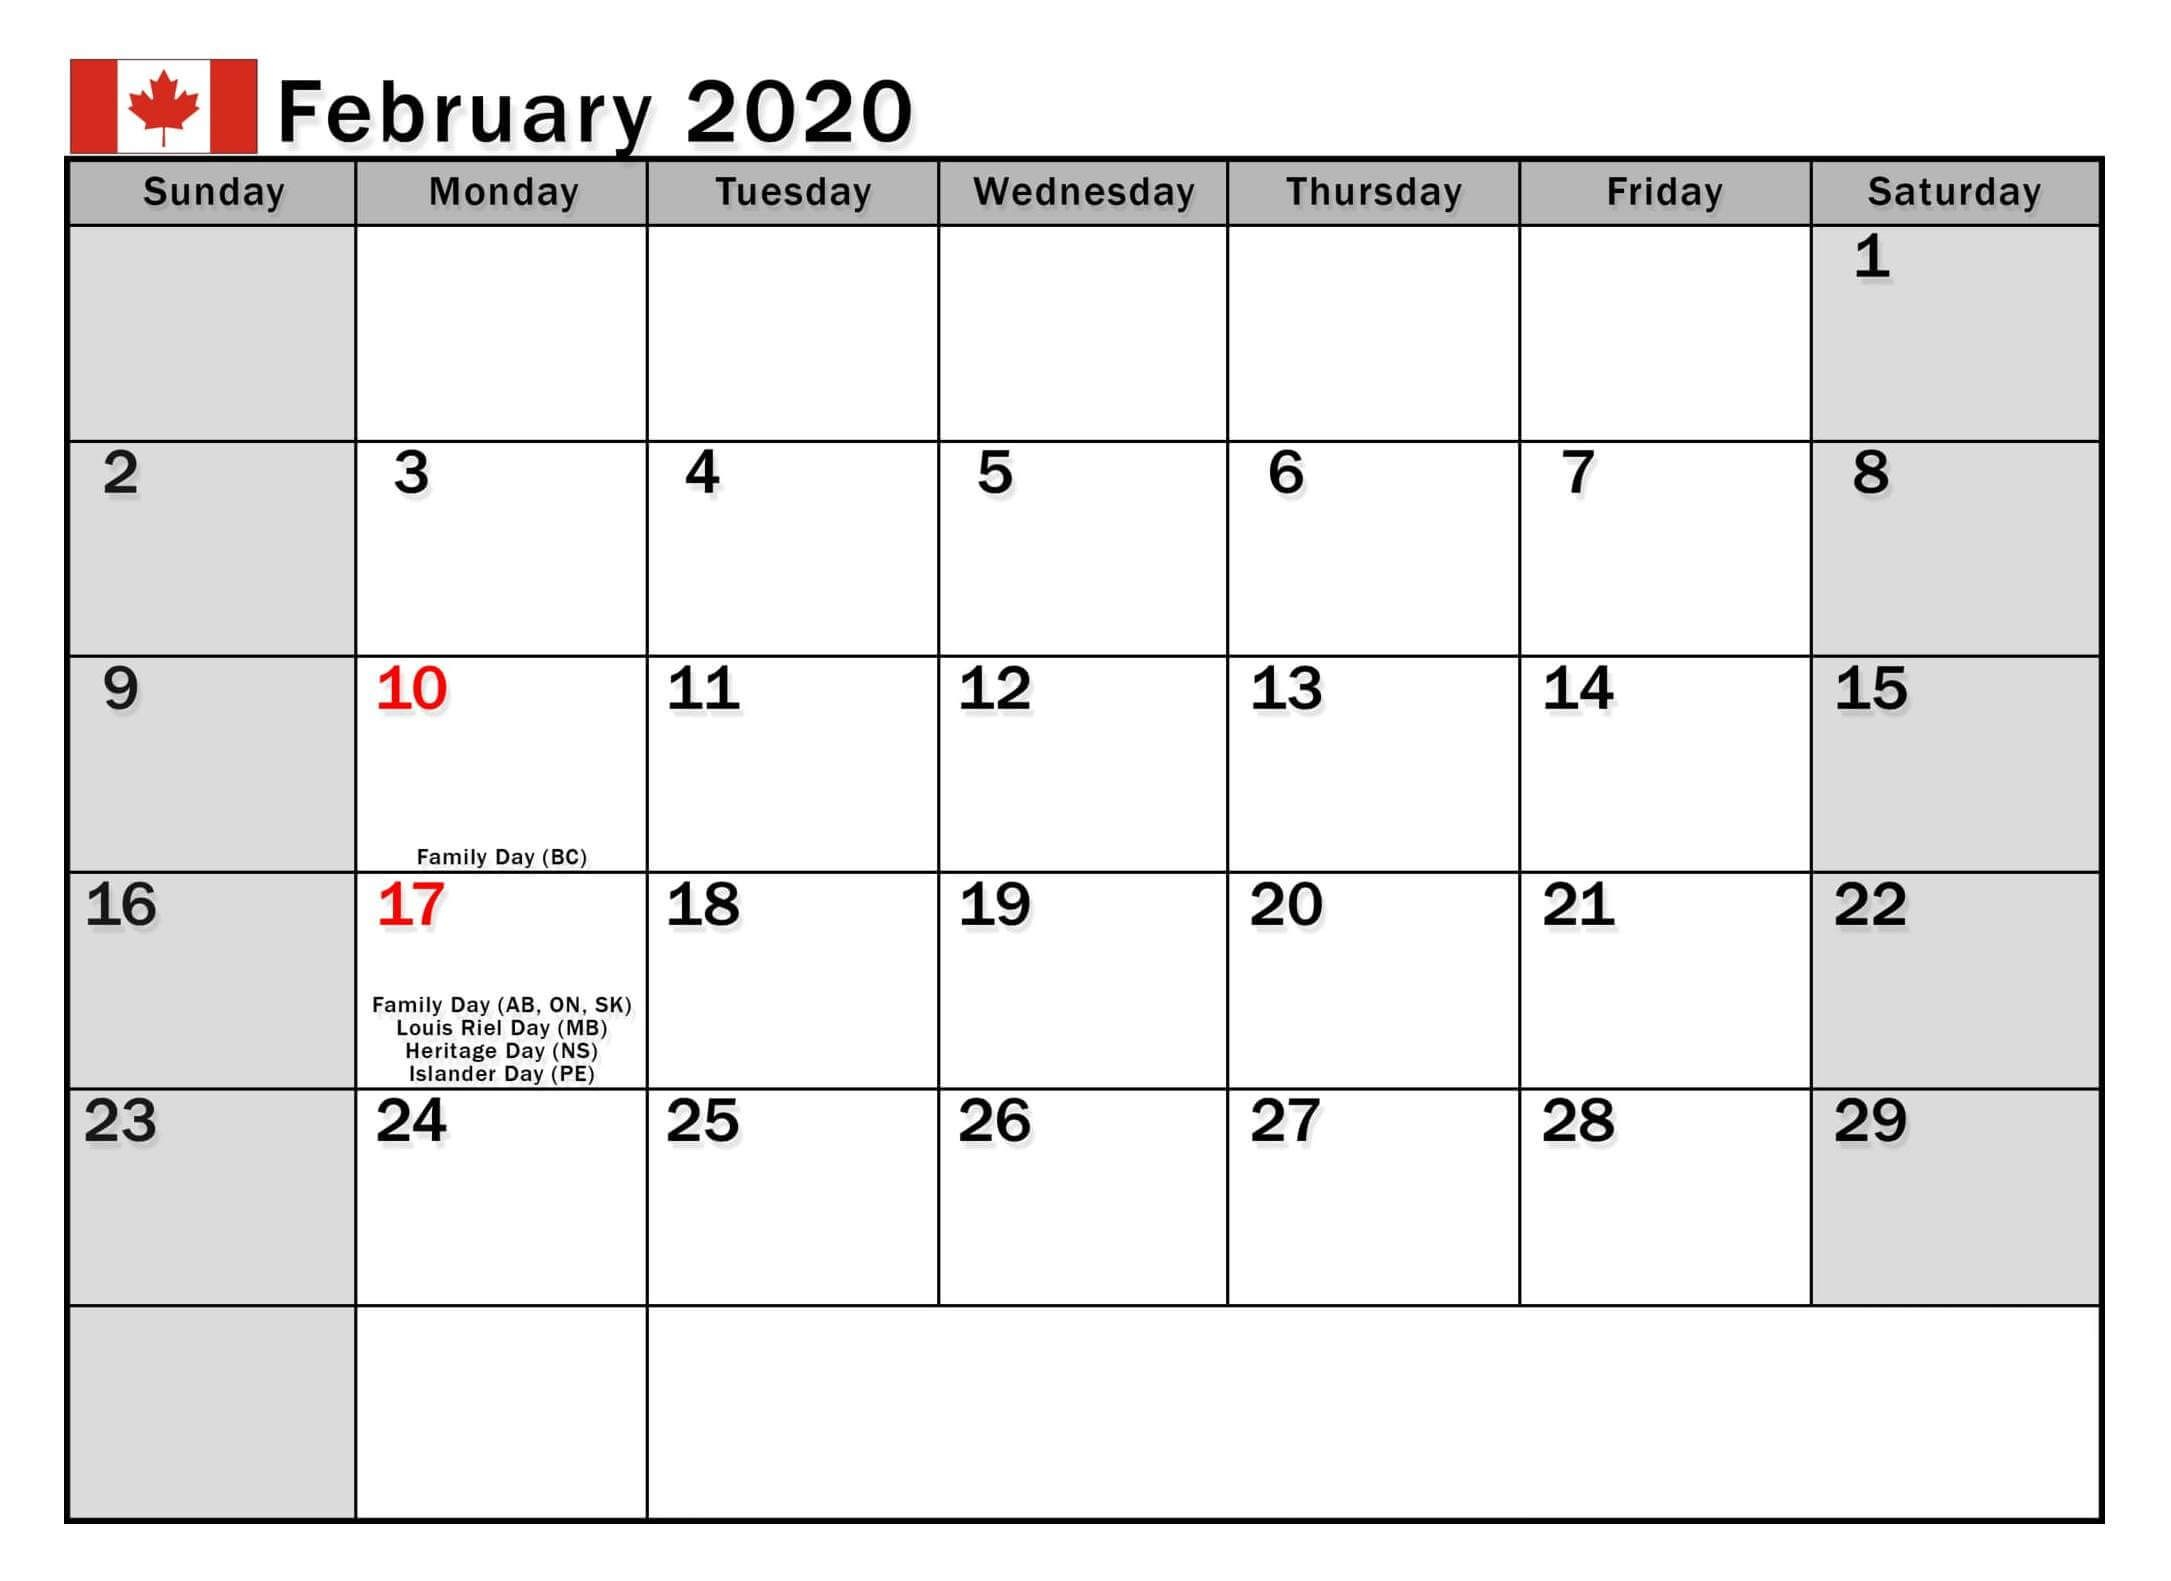 February 2020 Calendar With Holidays Us, Uk, Canada, India